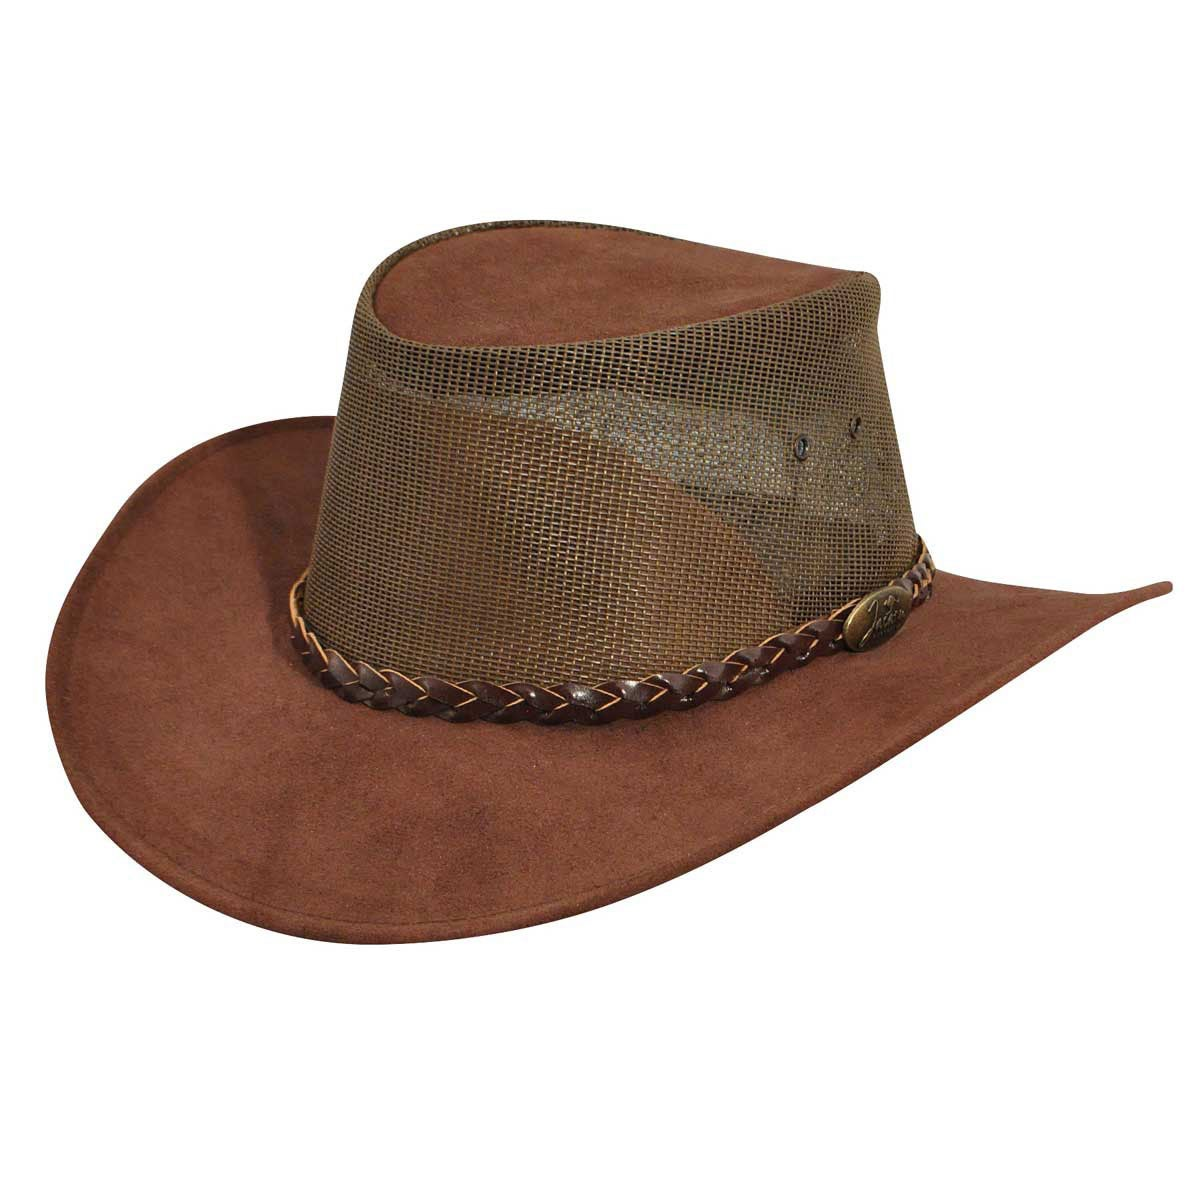 Jacaru Summer Breeze Outback Hat in Brown